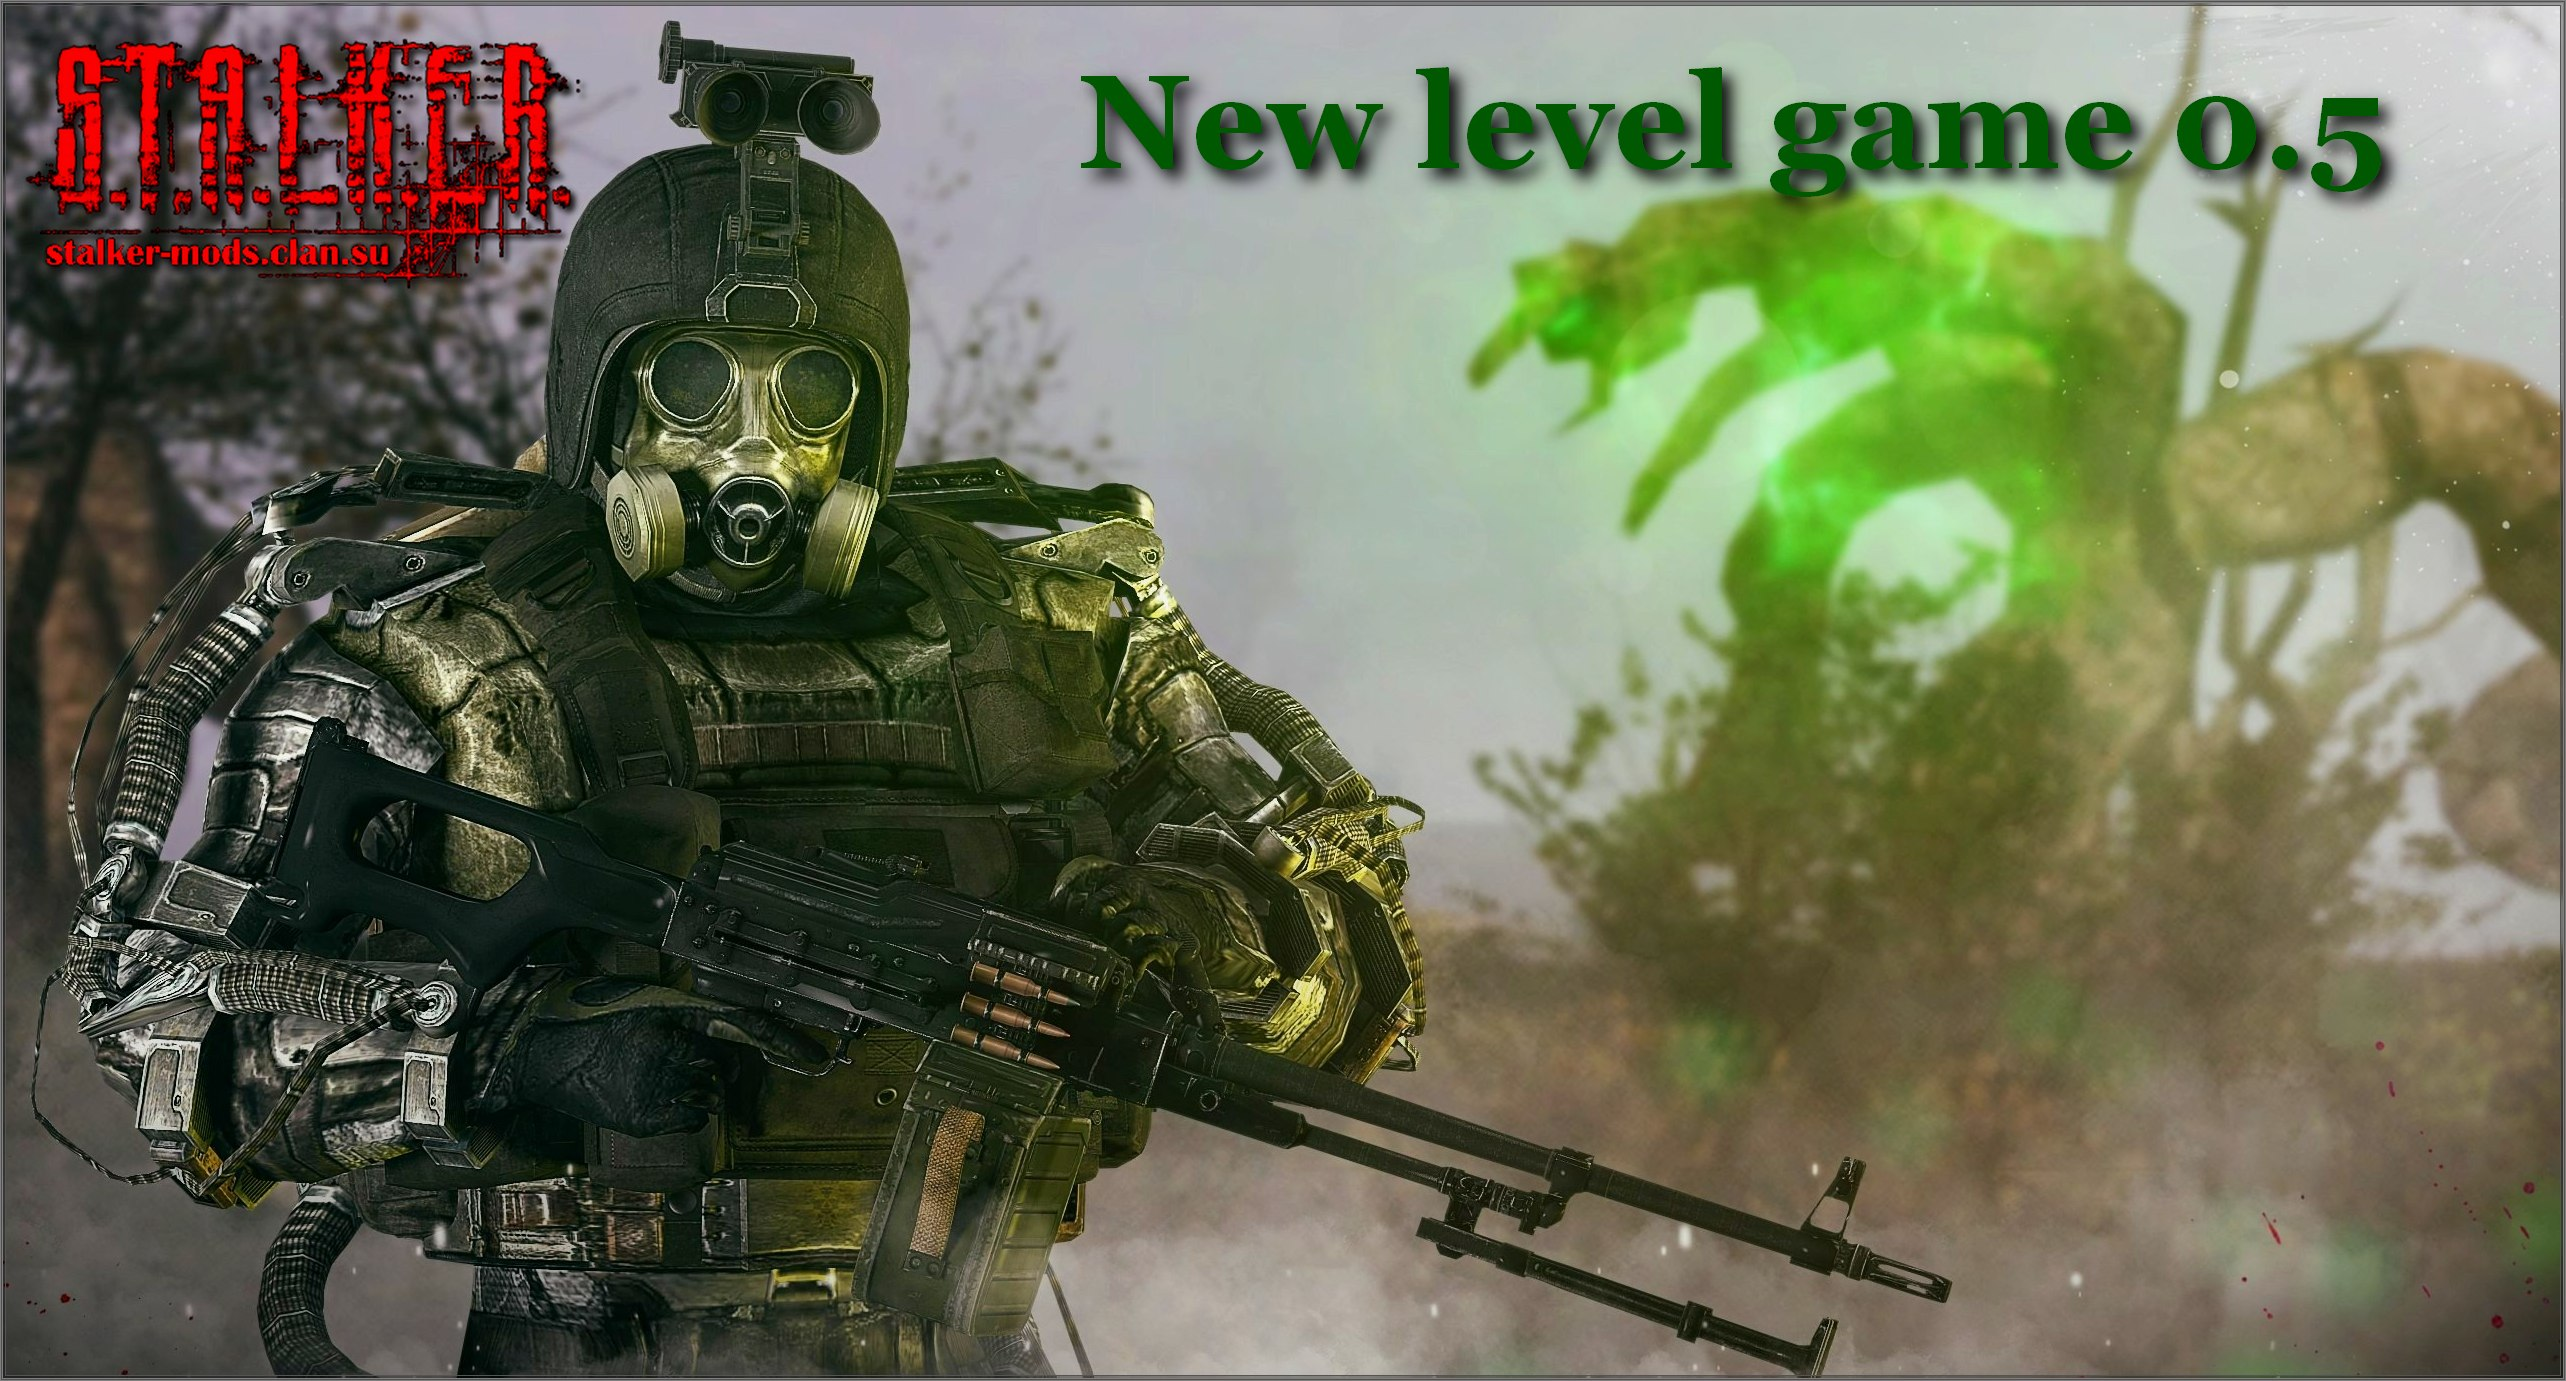 New level game 0.5